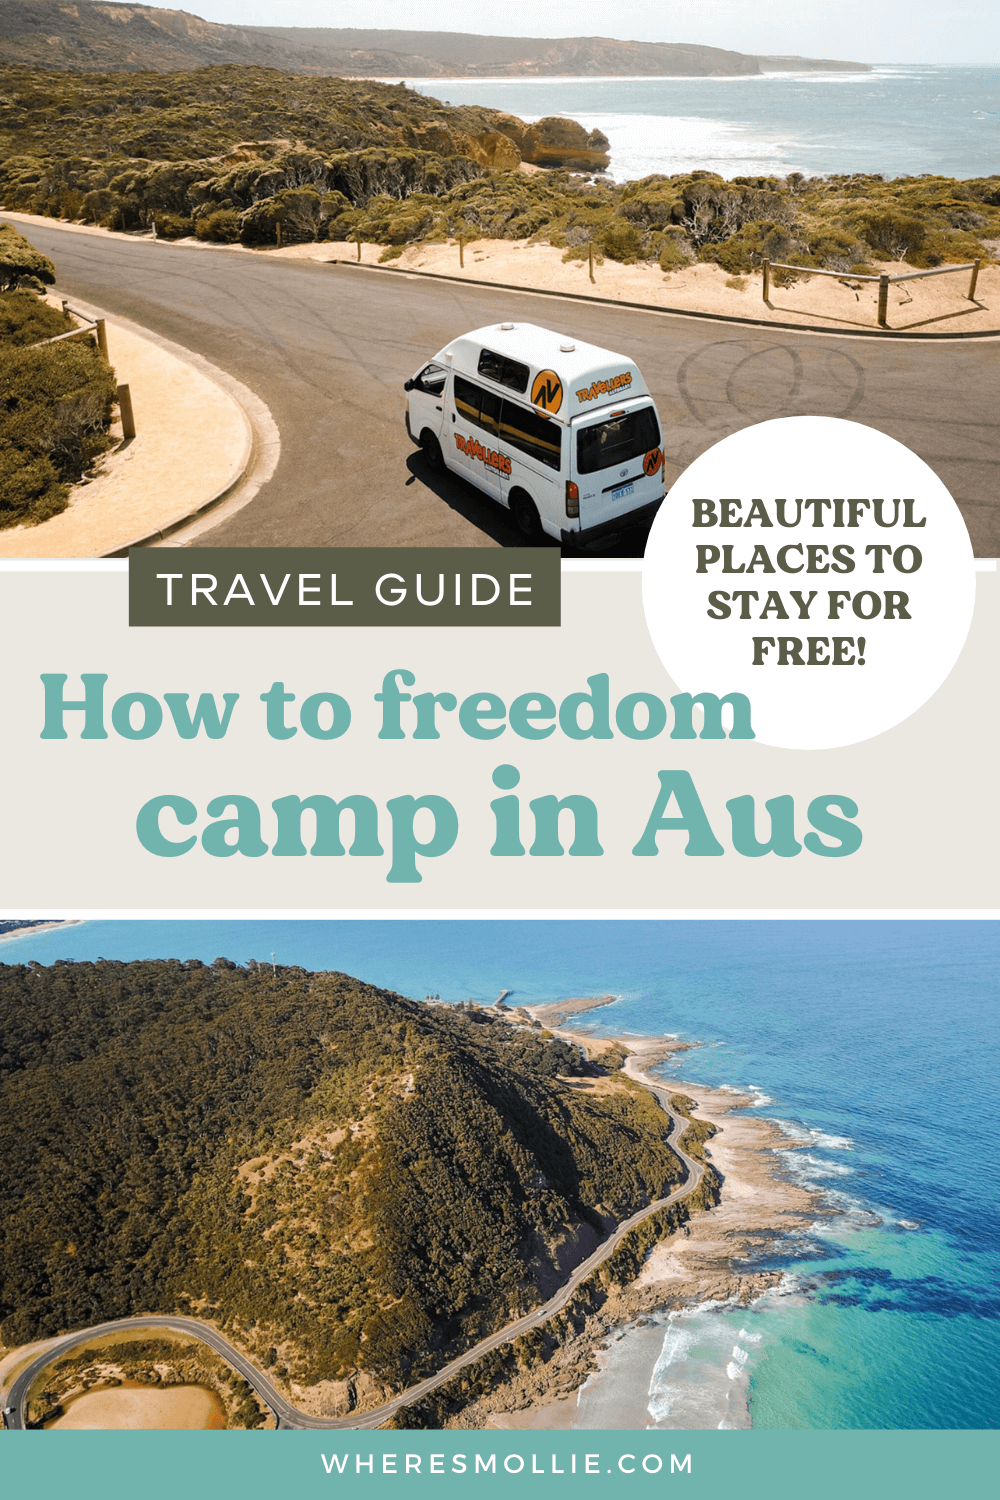 A guide to freedom camping on the east coast of Australia